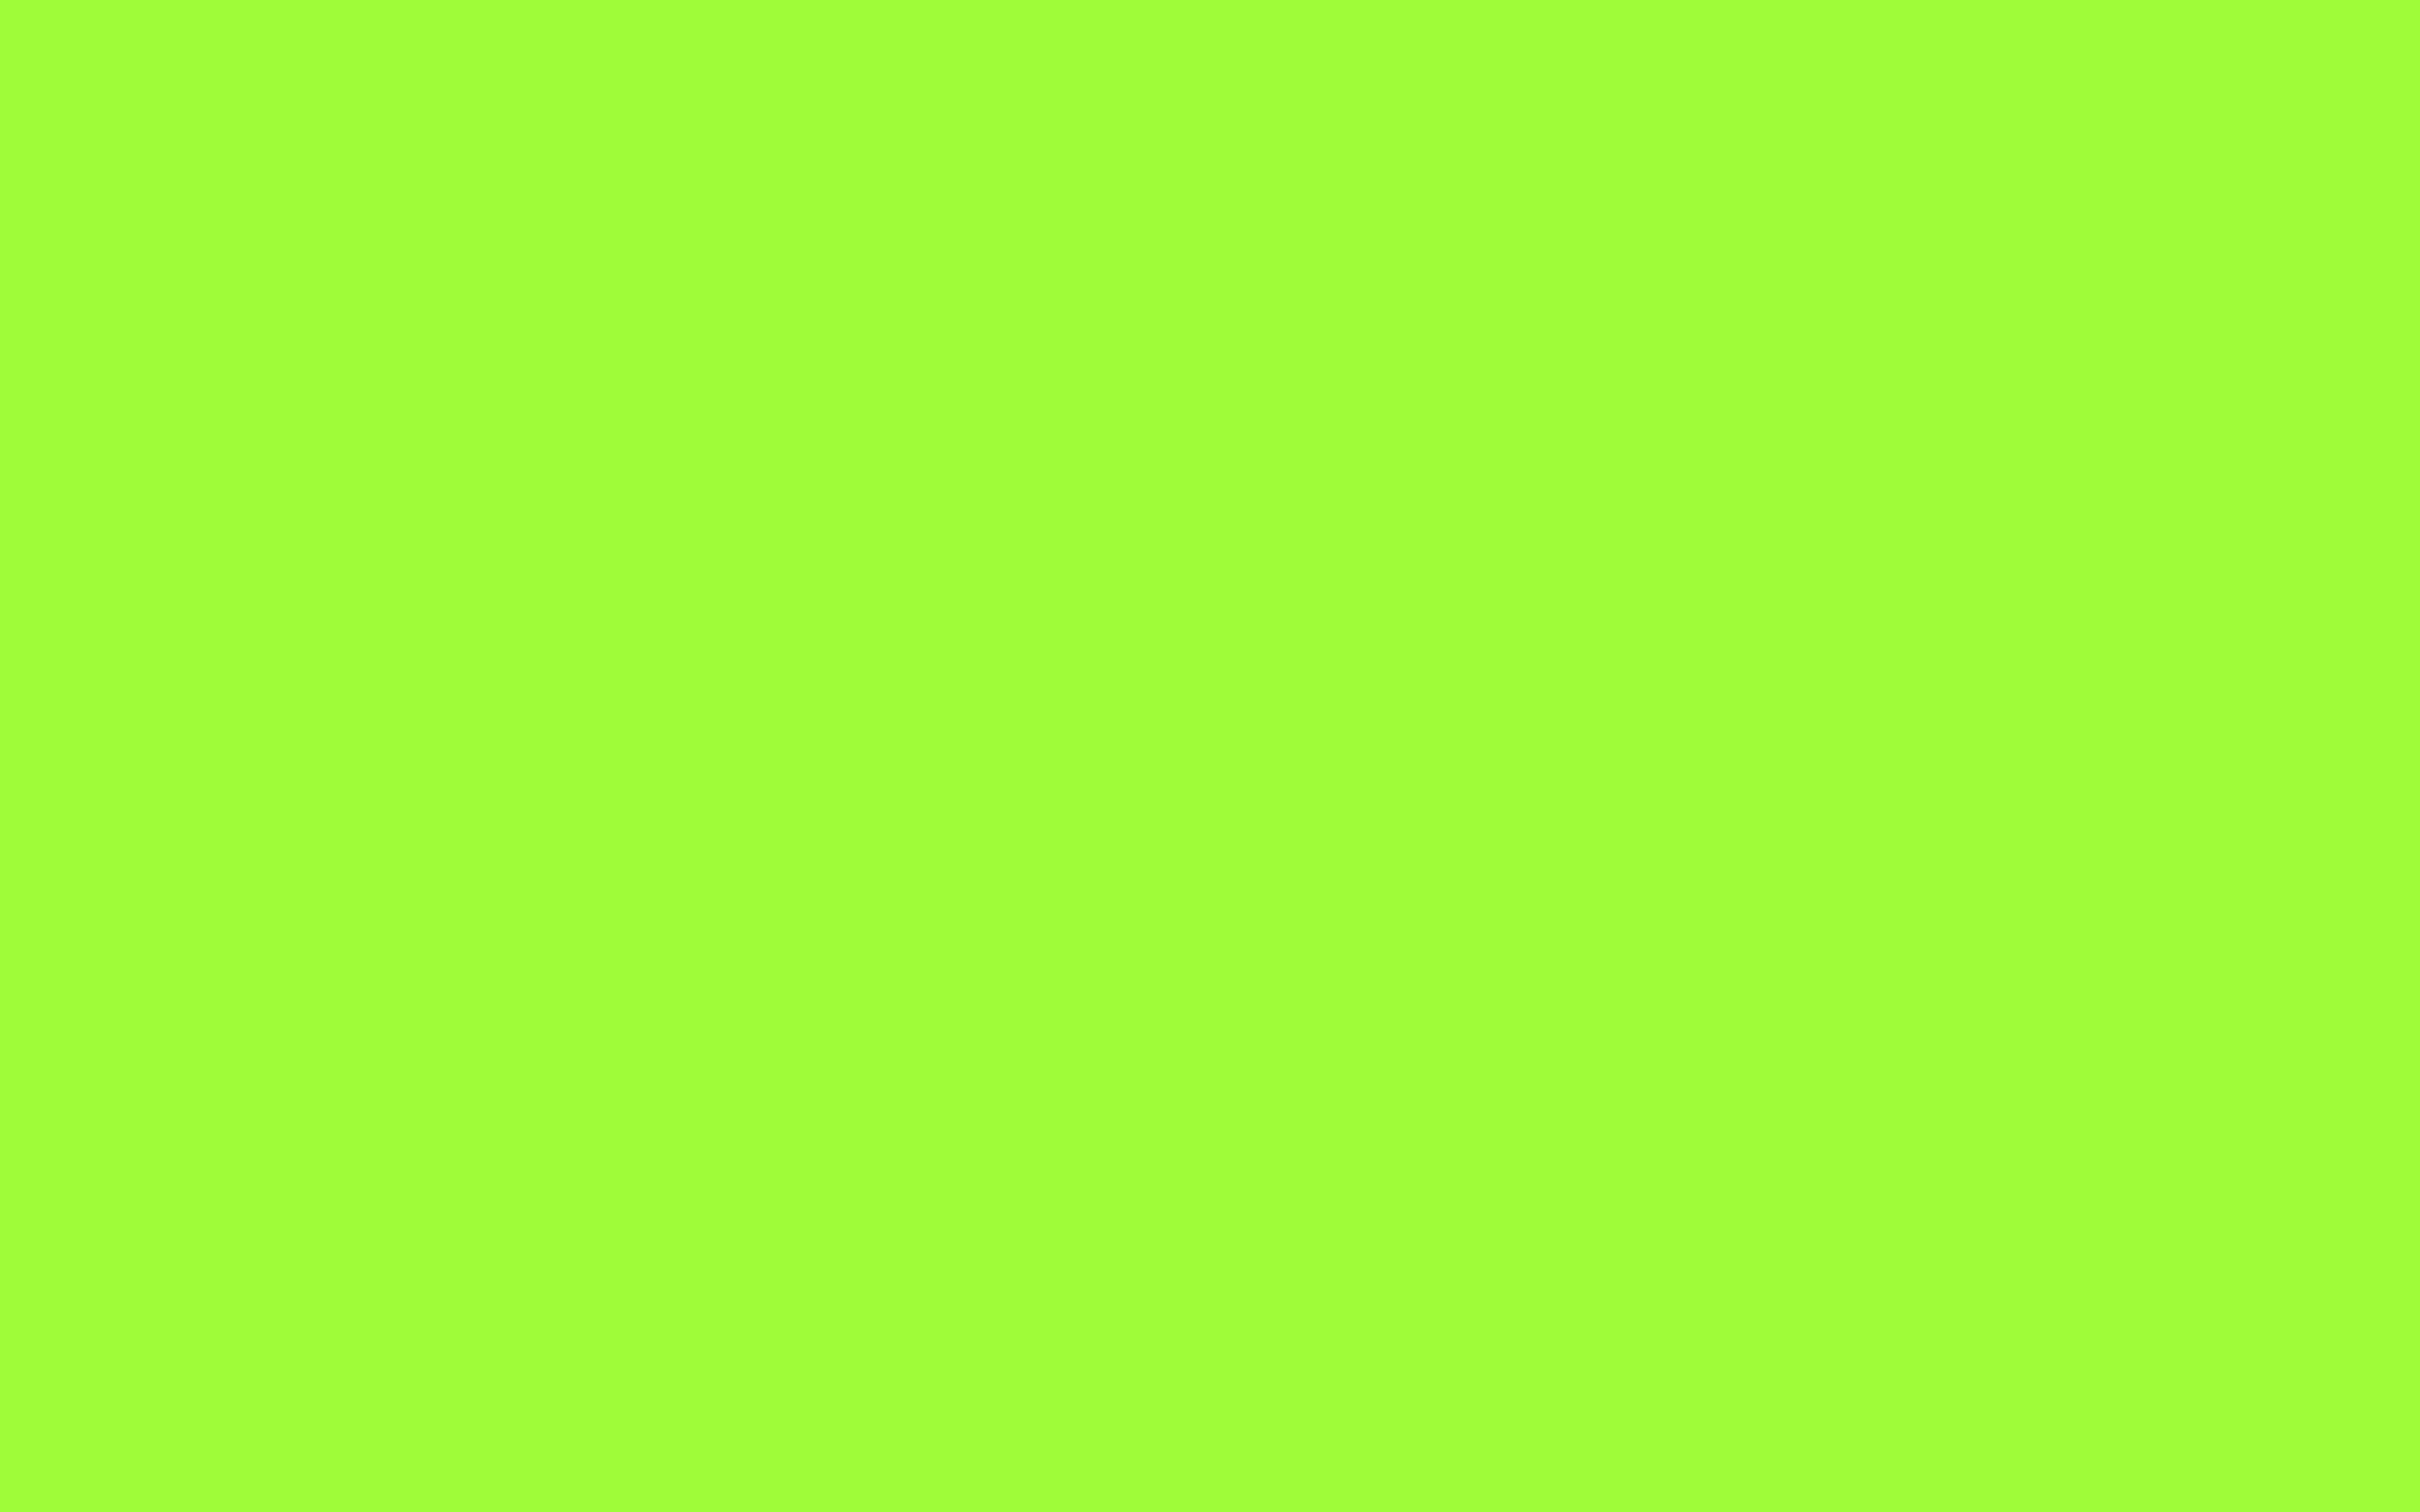 lime color background - photo #24